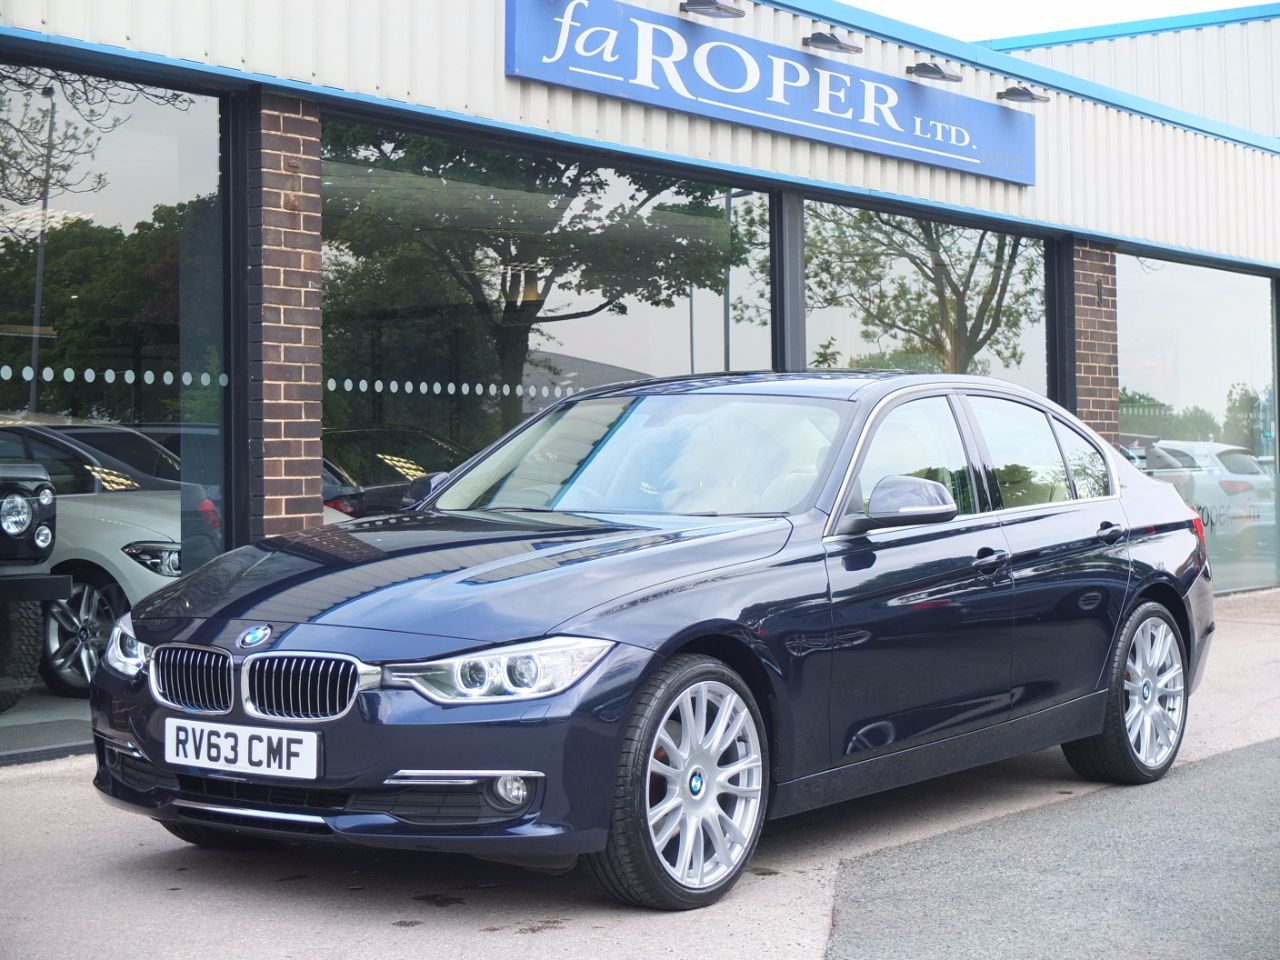 BMW 3 Series 2.0 320d Luxury Auto (+++Spec) Saloon Diesel Imperial Blue XirallicBMW 3 Series 2.0 320d Luxury Auto (+++Spec) Saloon Diesel Imperial Blue Xirallic at fa Roper Ltd Bradford